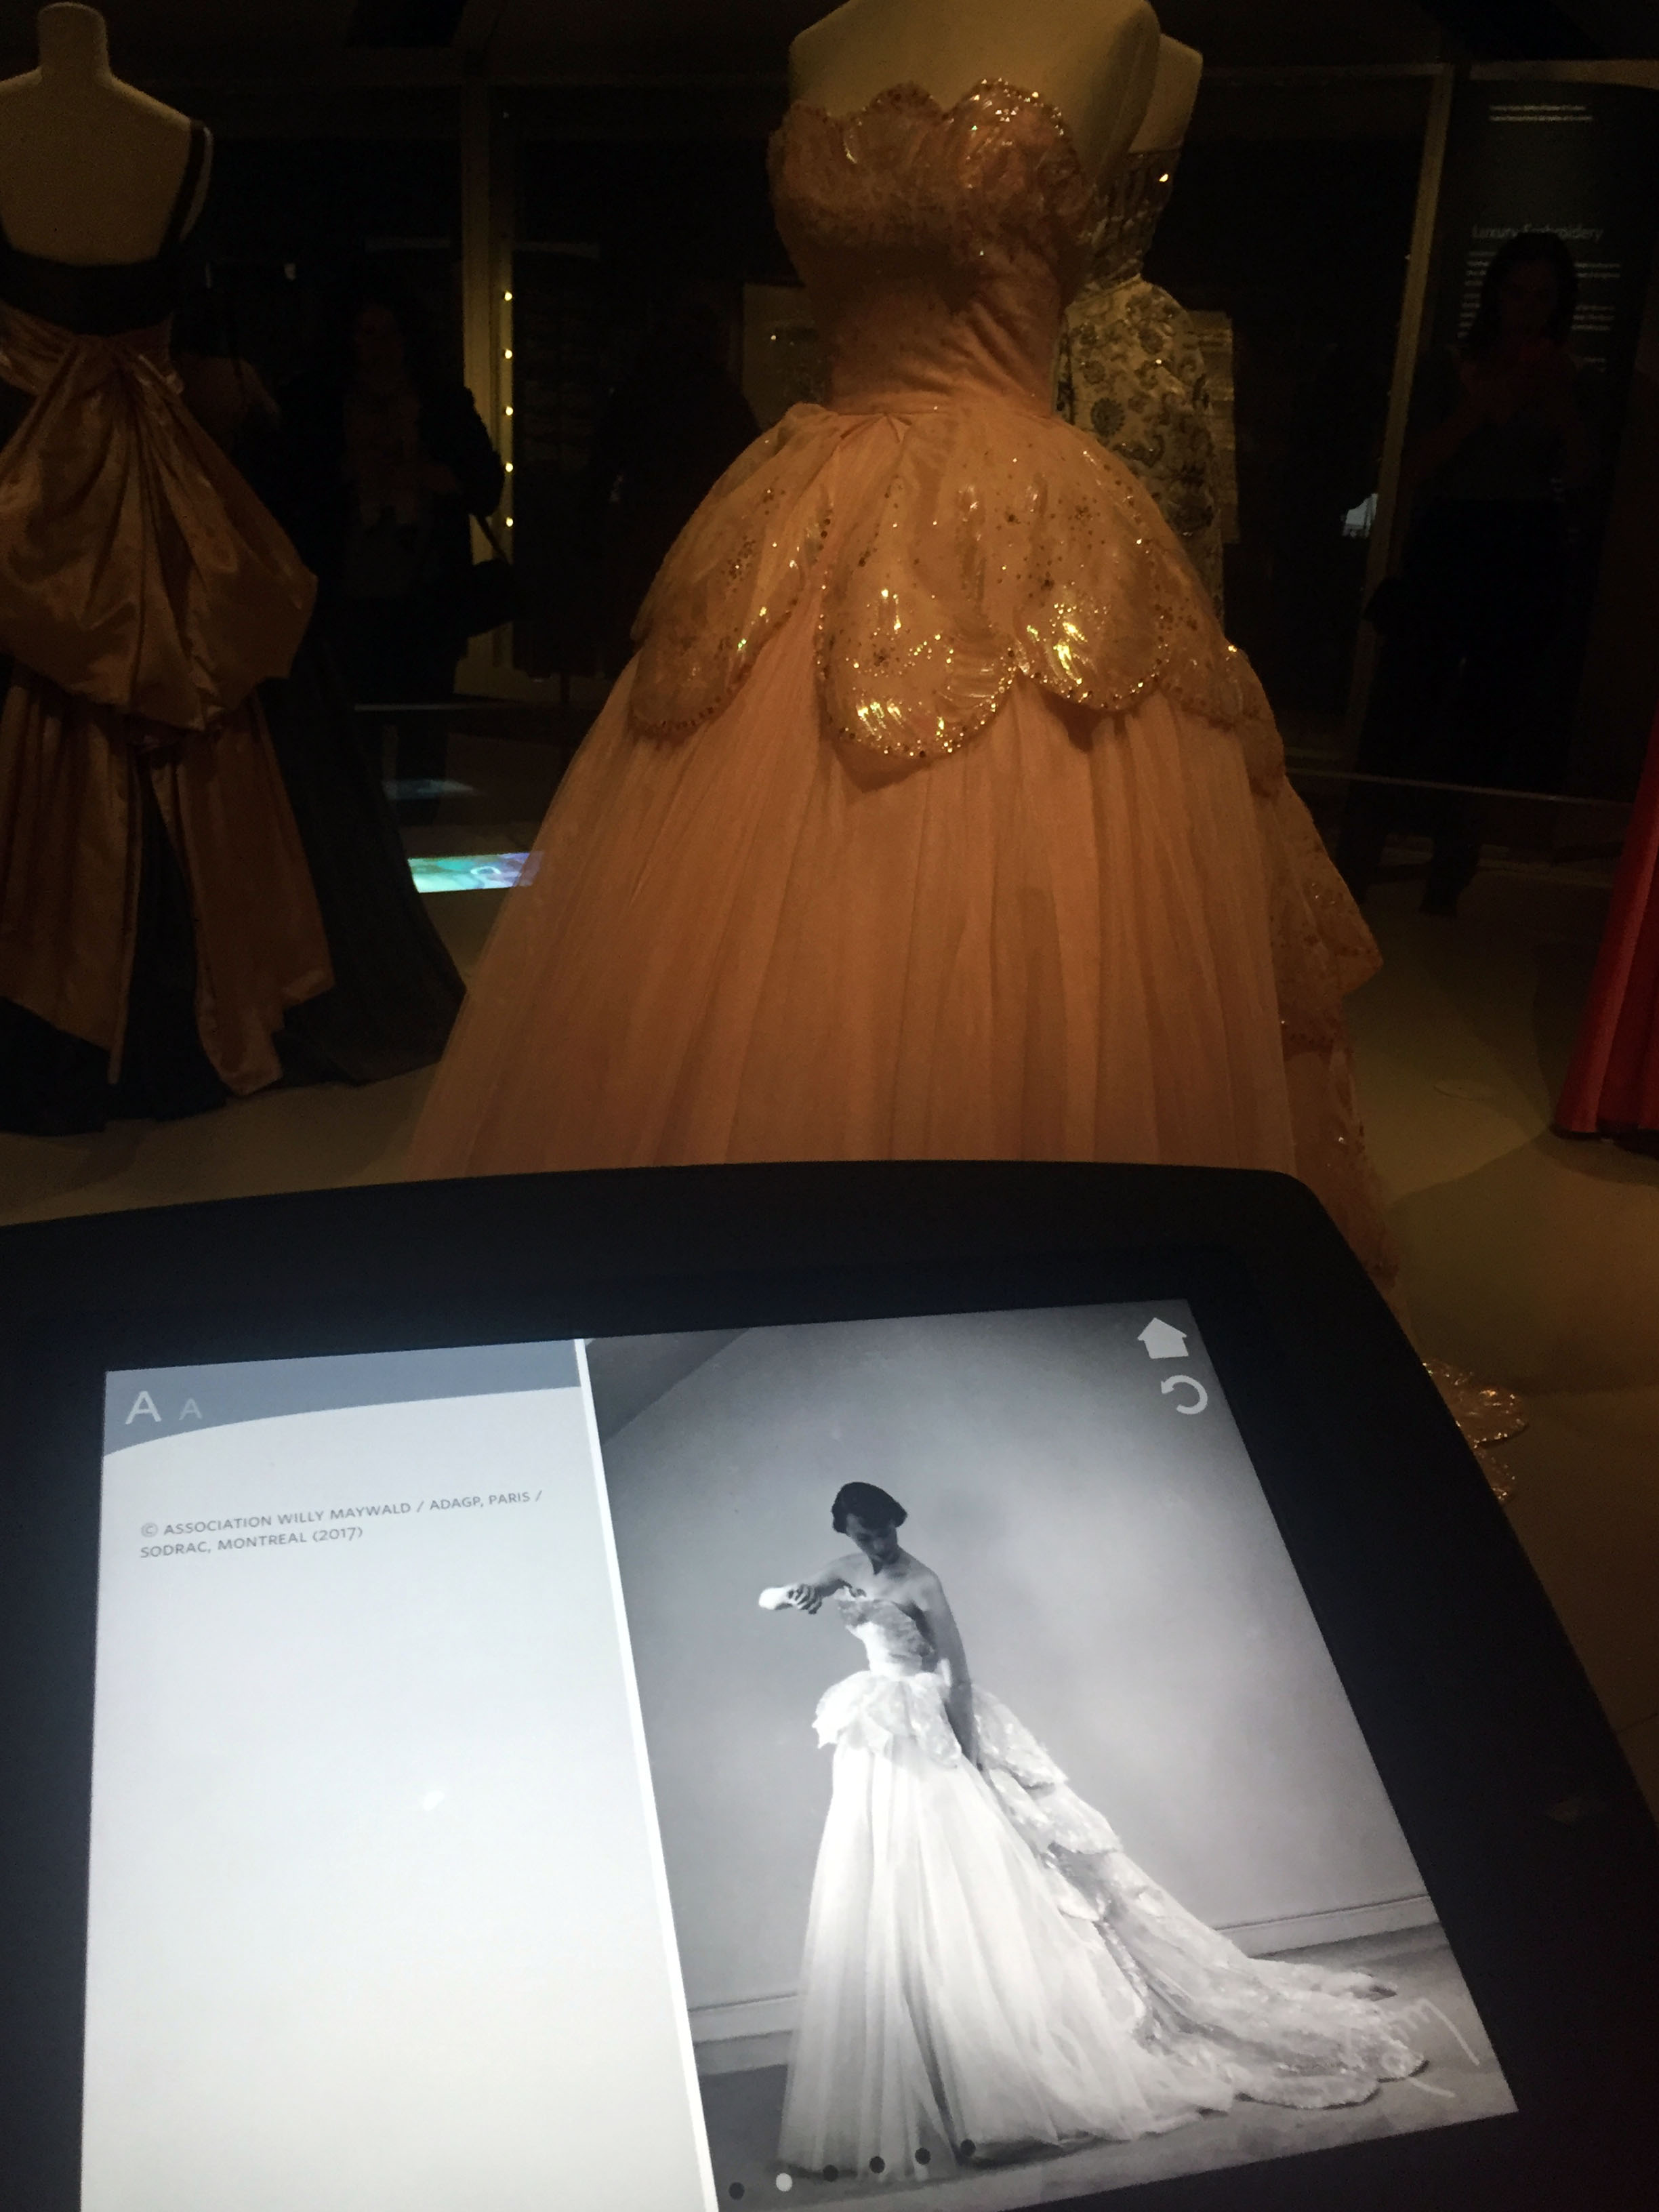 Device displaying information about a particular dress on display.